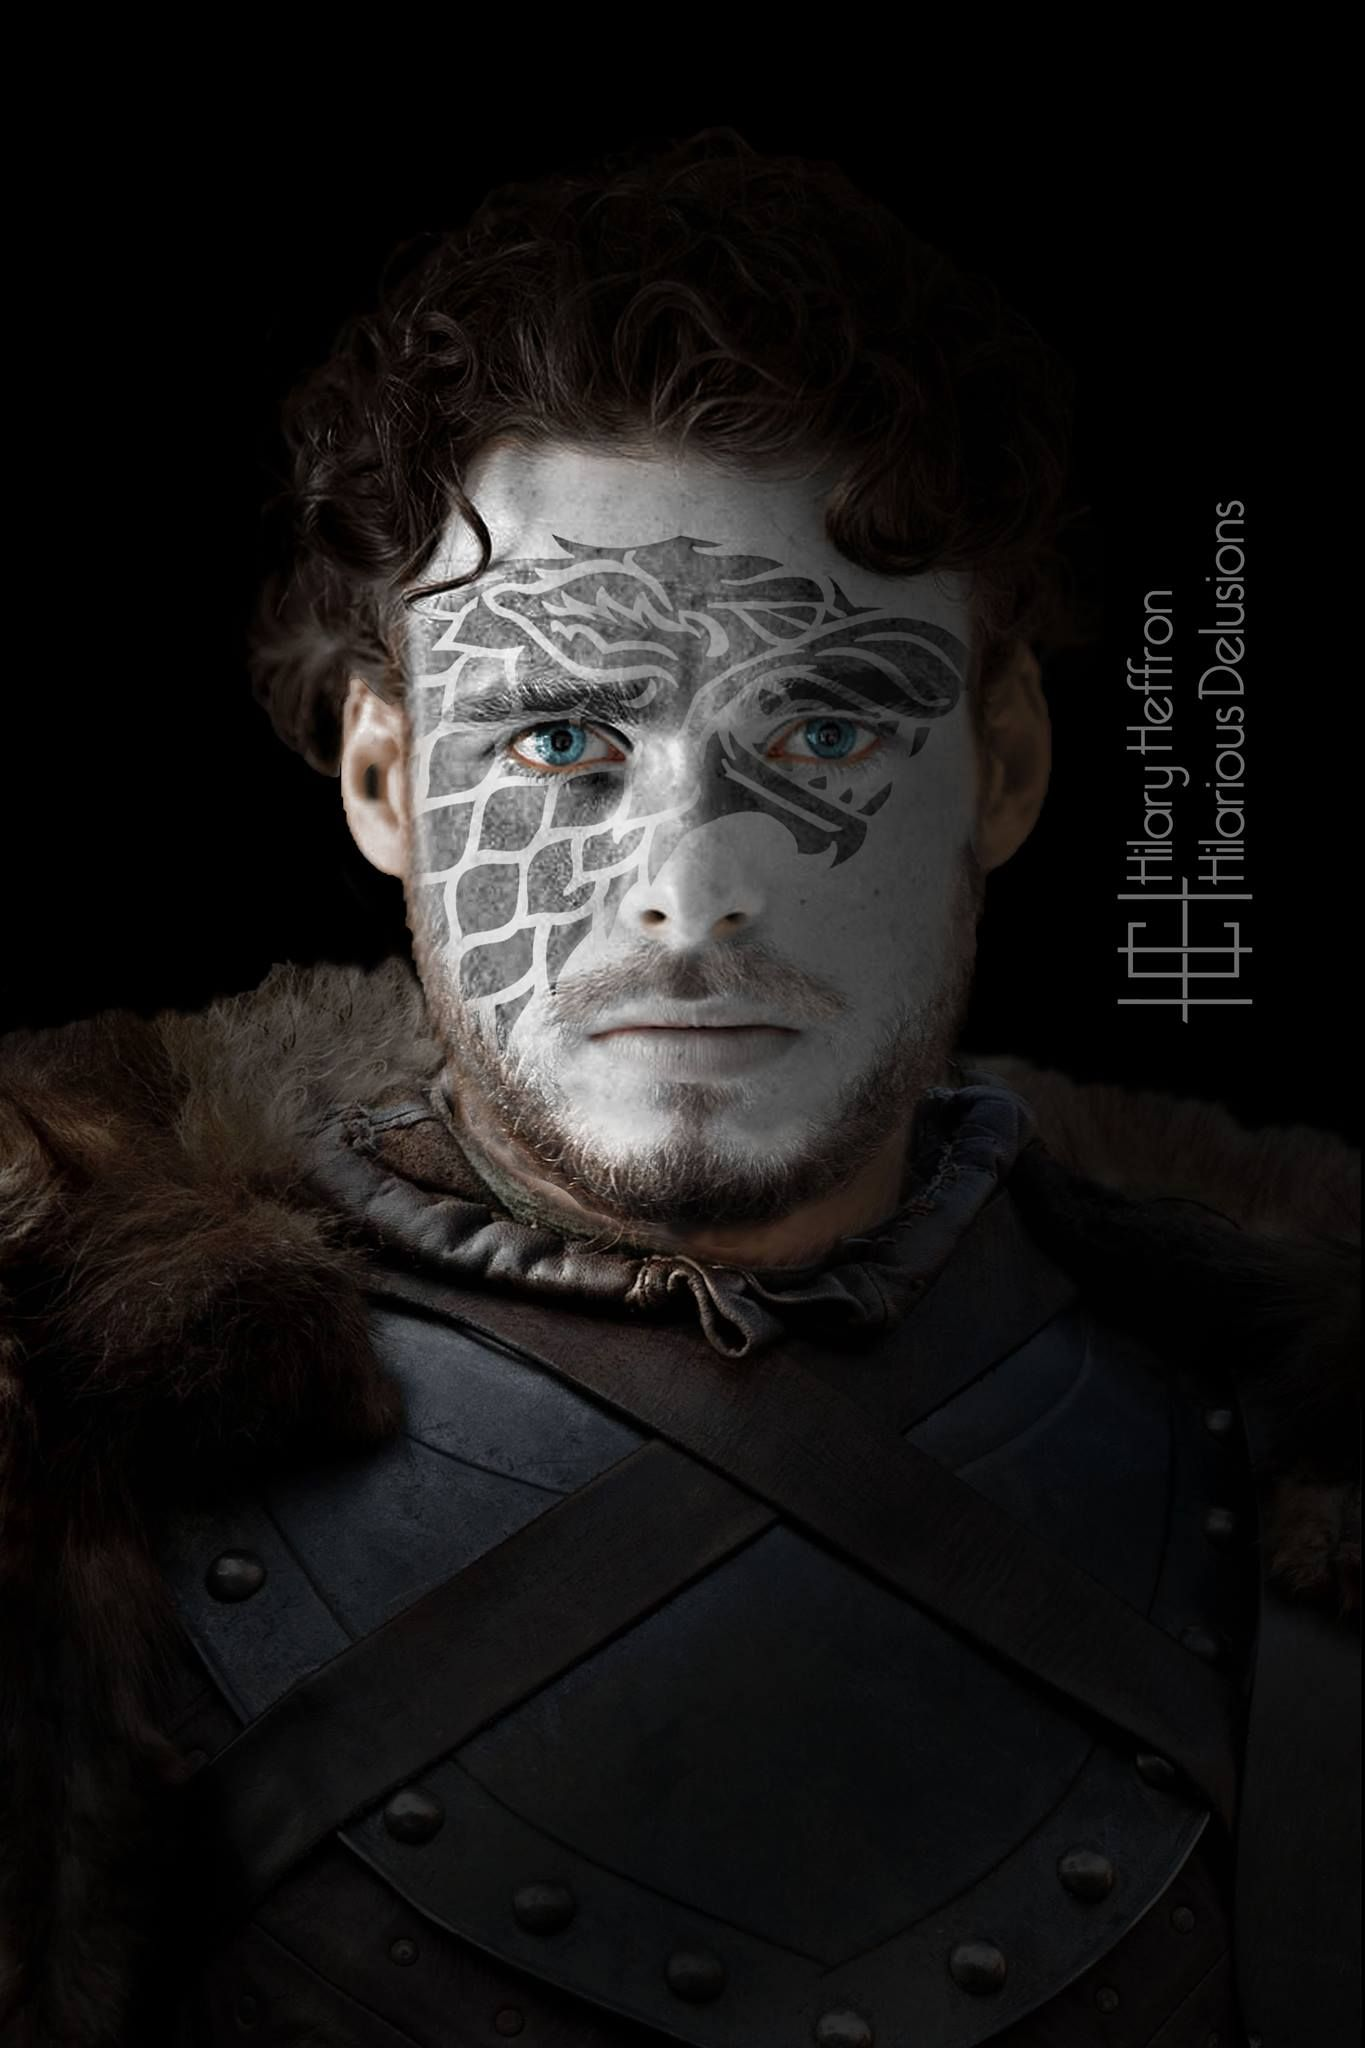 Robb Stark (Winter Edition) by Hilary Heffron - Hilarious Delusions